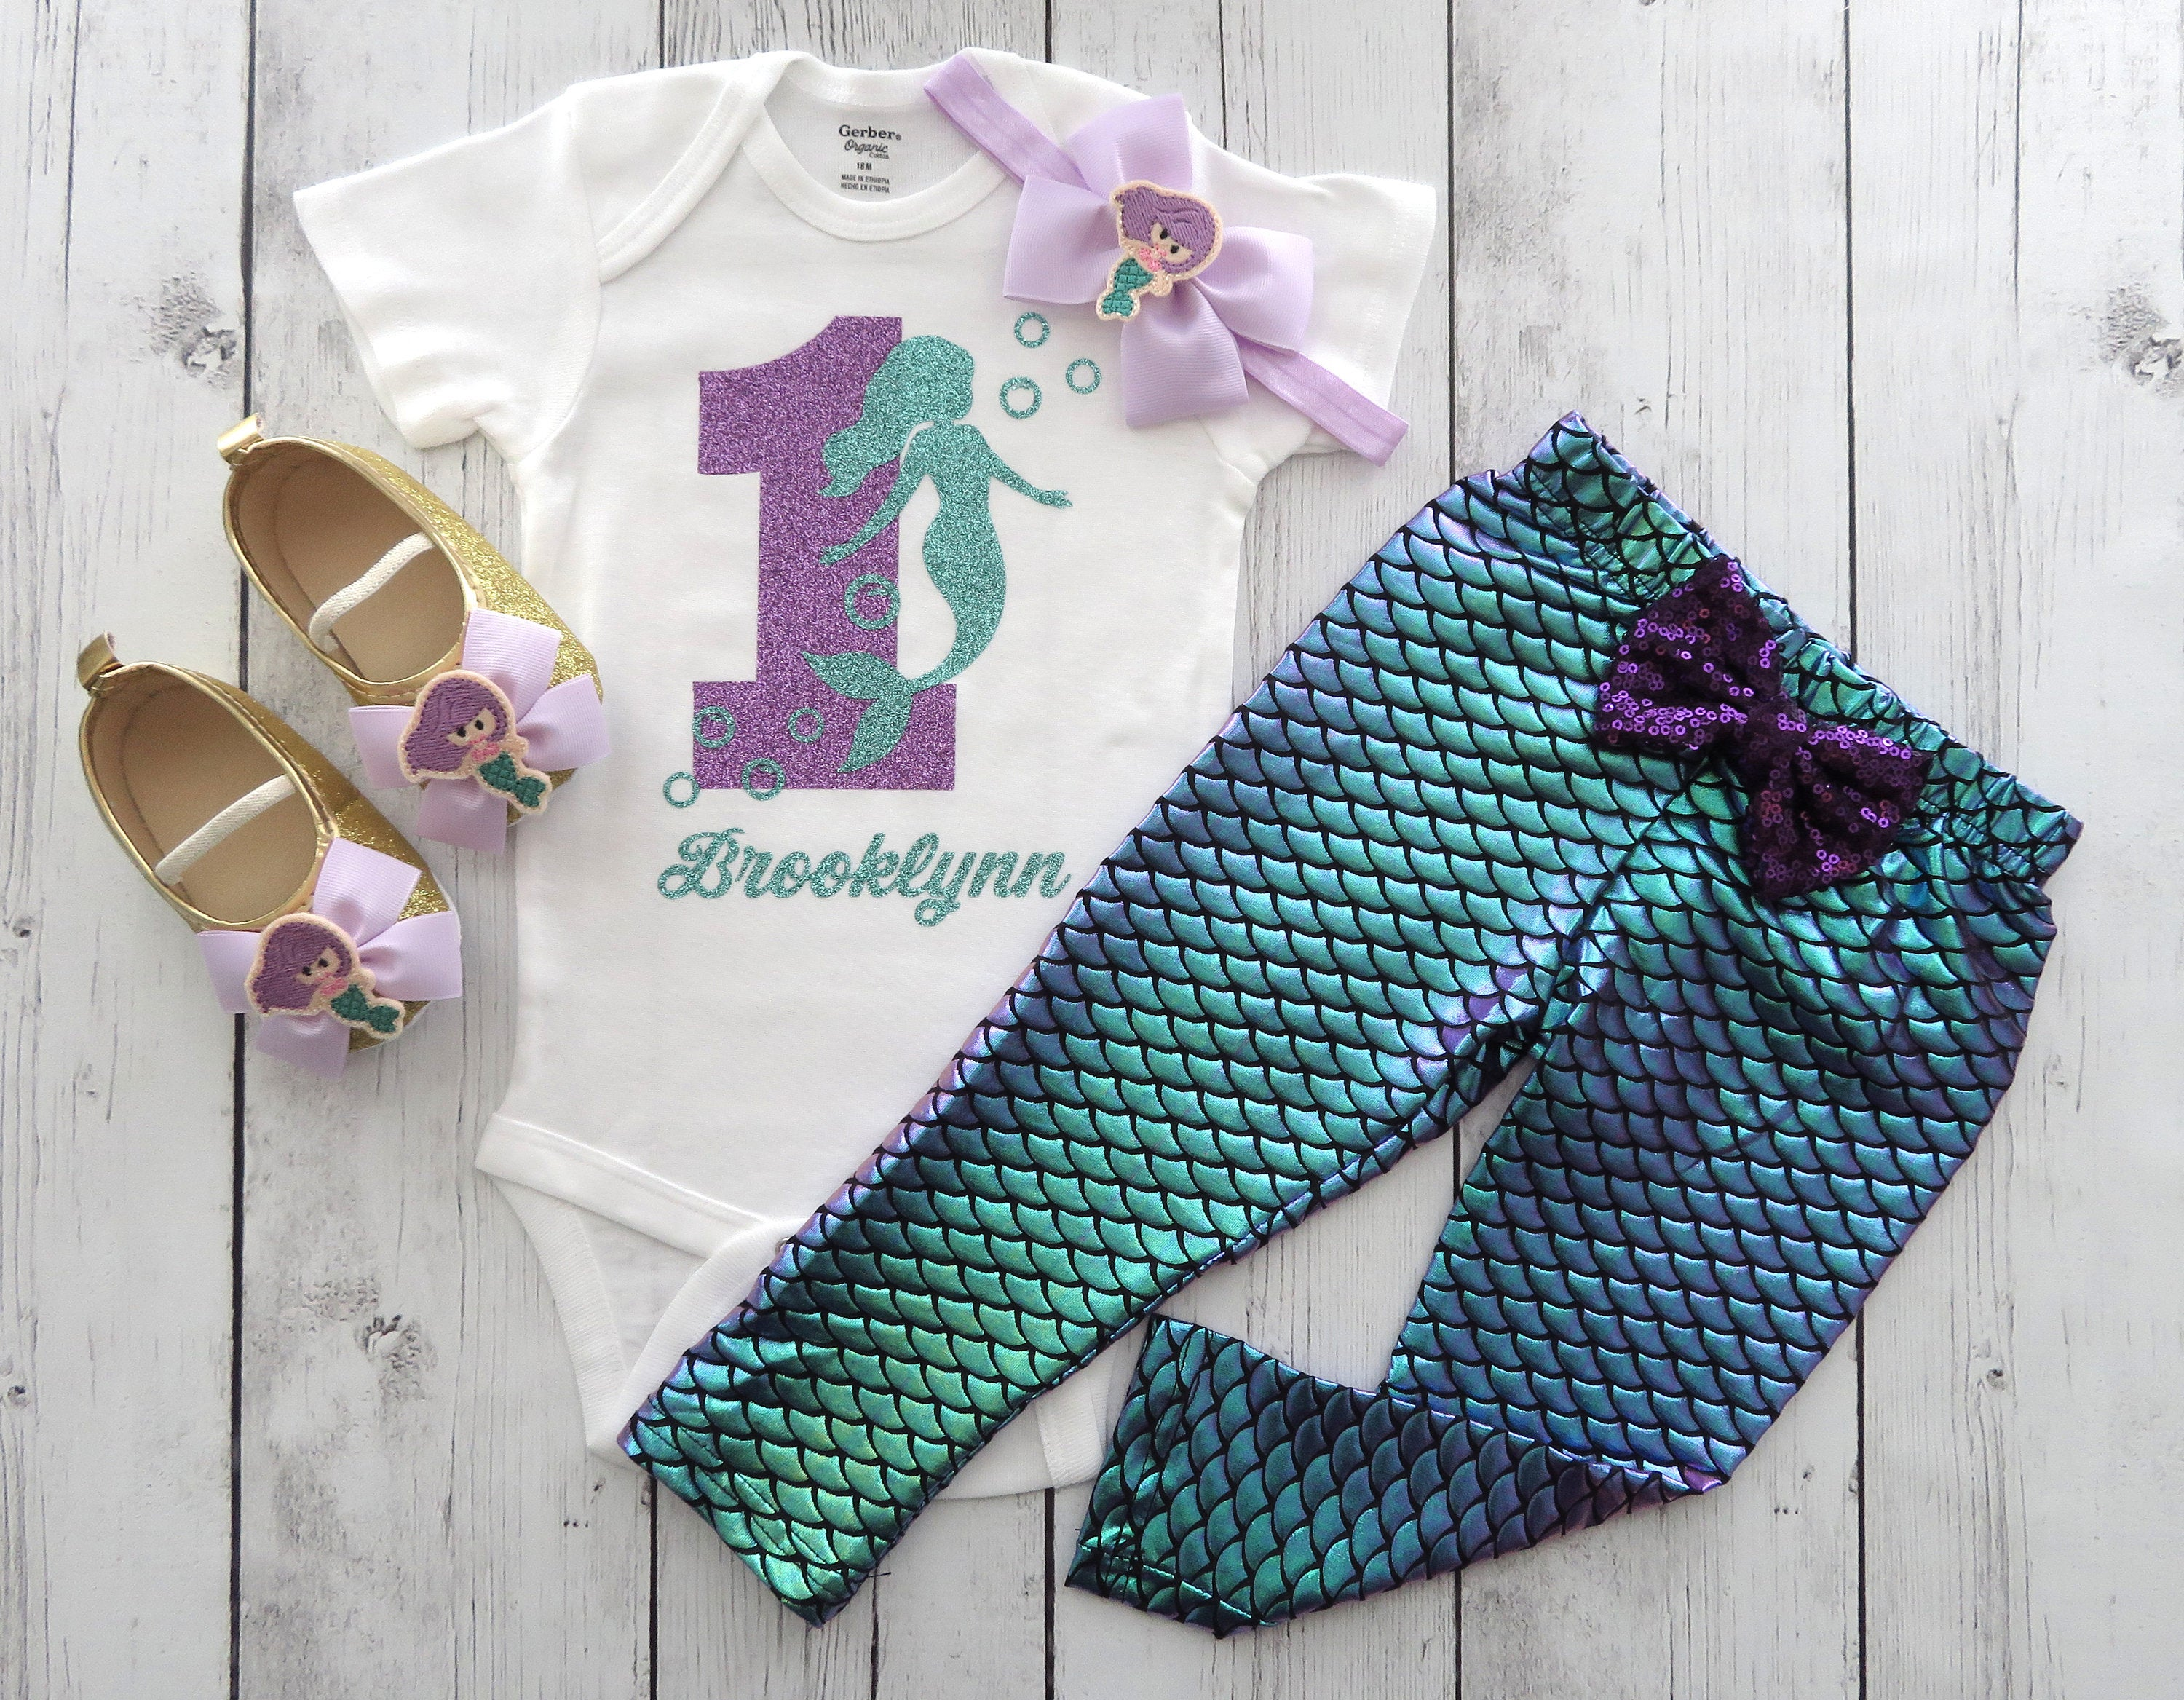 Mermaid First Birthday Outfit in Purple and Aqua with mermaid scale pants / leggings -under the sea, mermaid 1st bday outfit, mermaid outfit